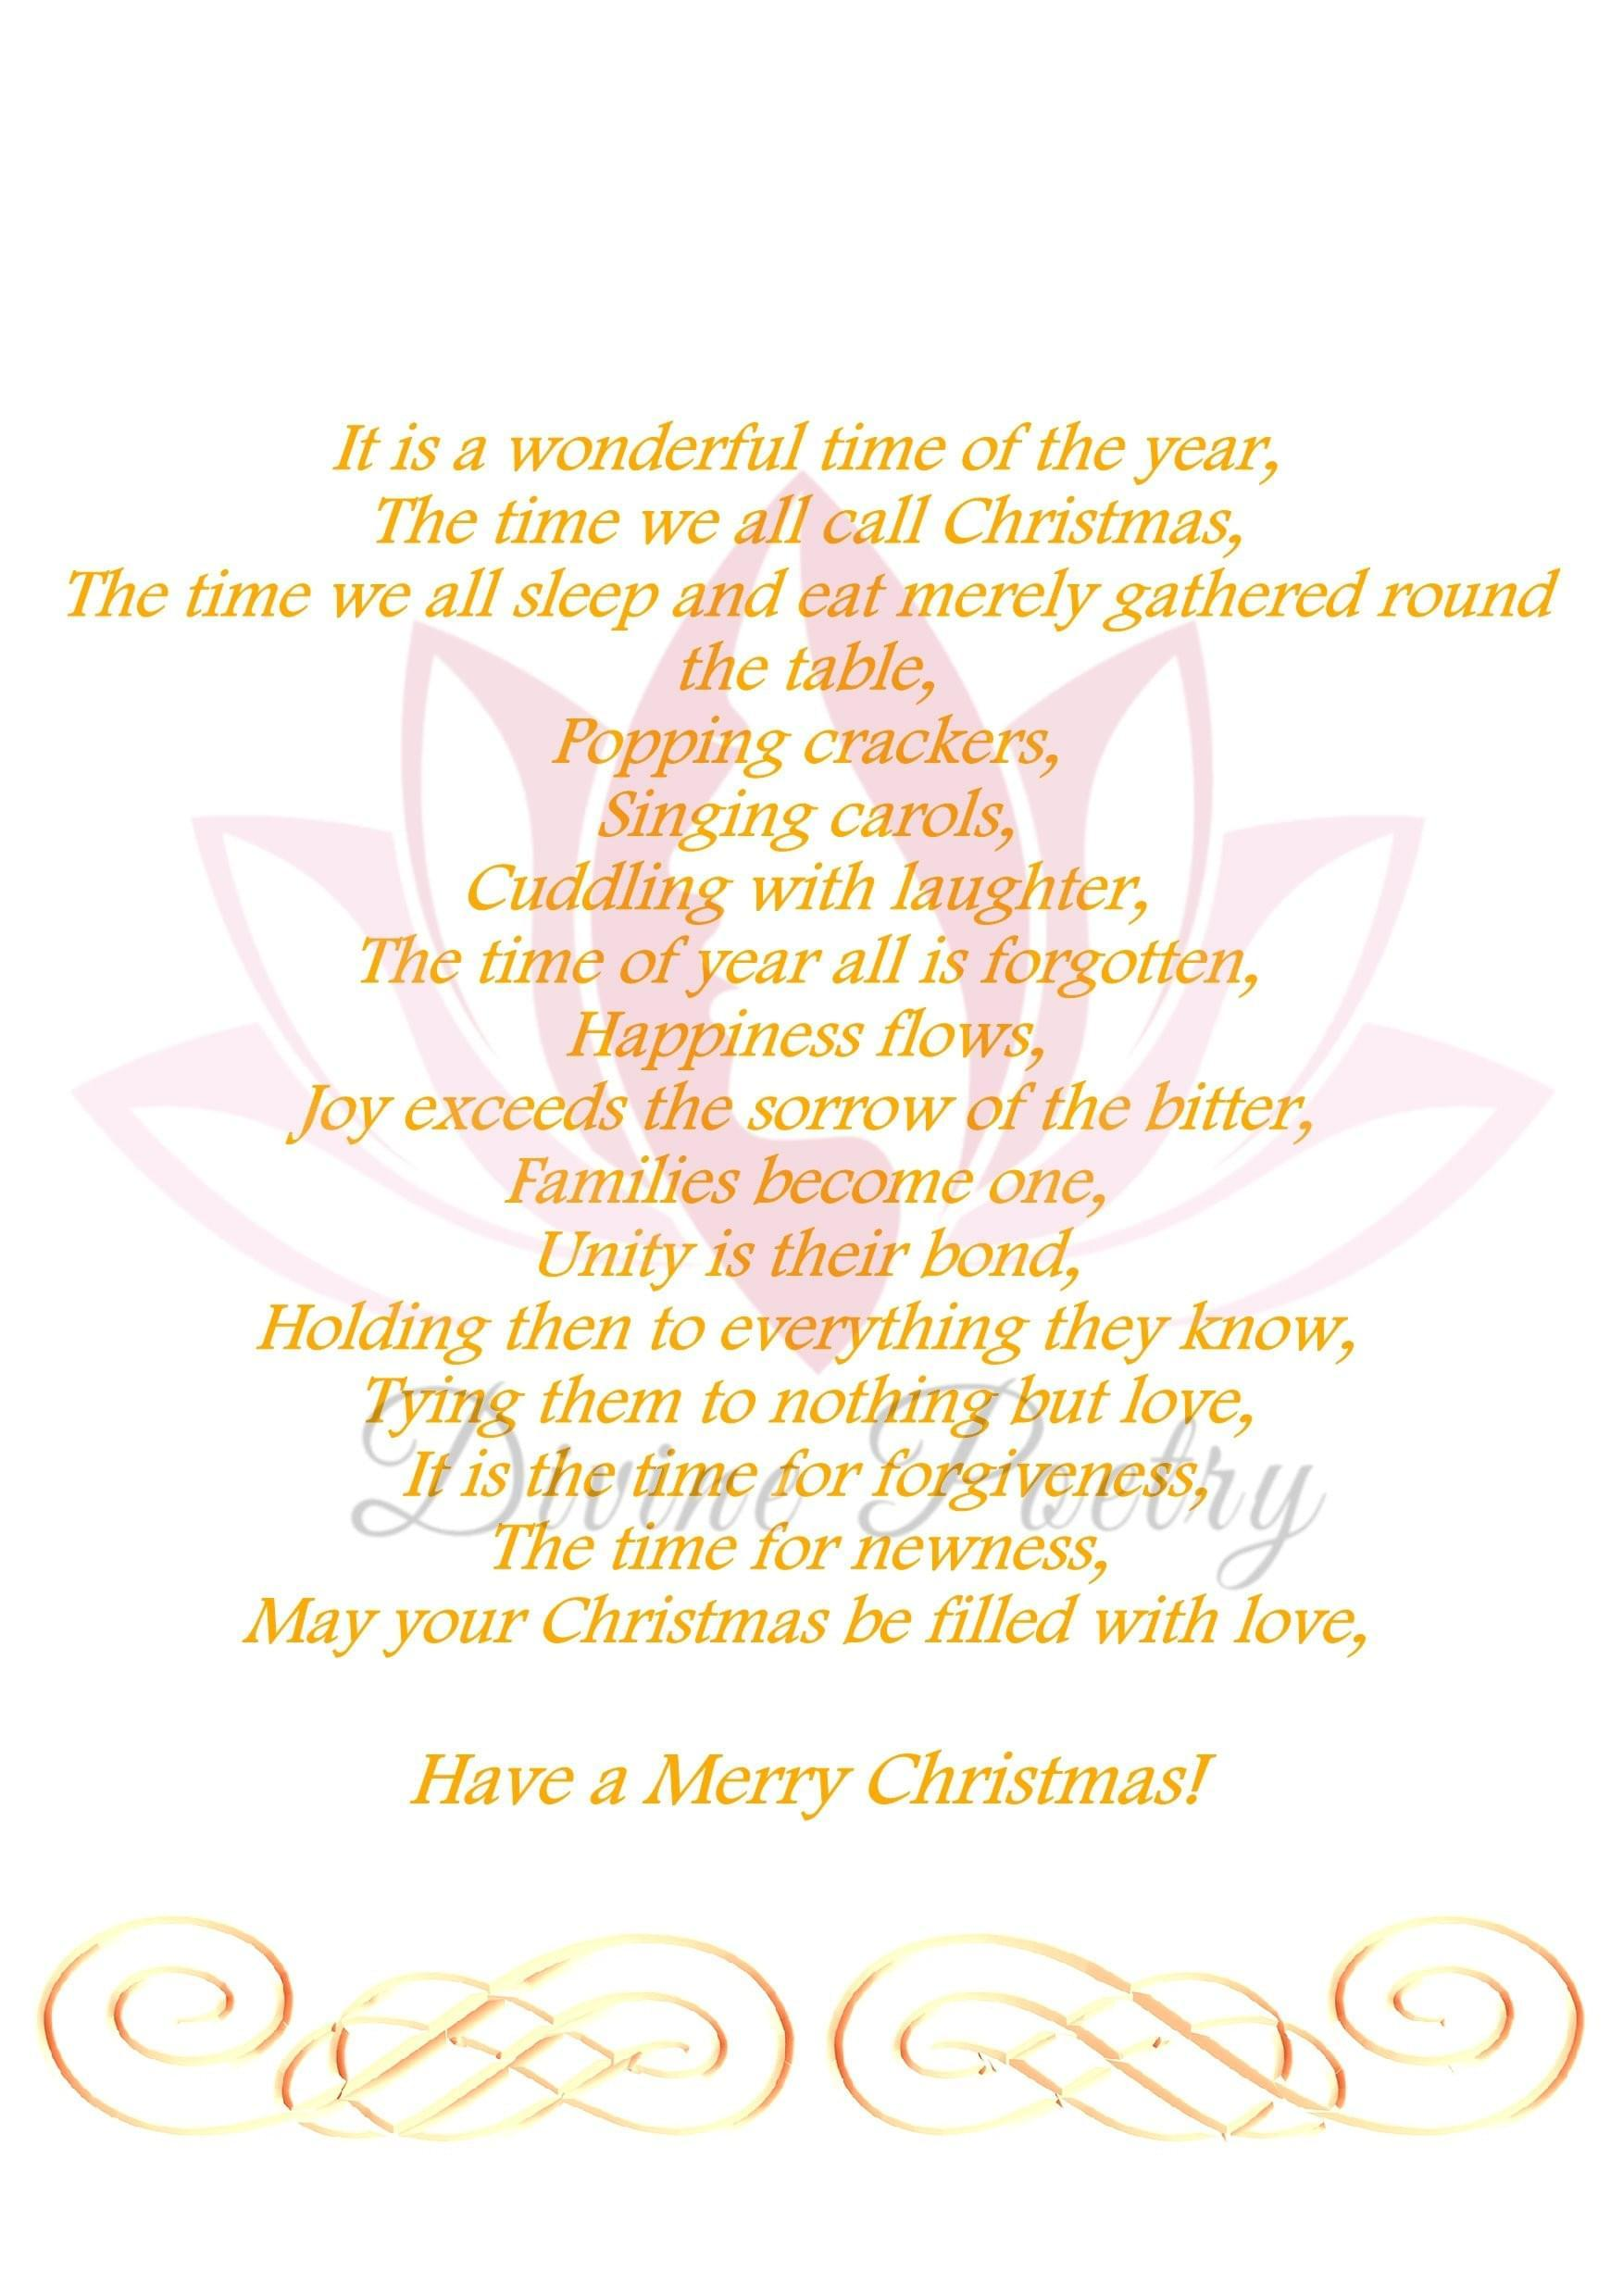 Merry Christmas Love - Divine Poetry